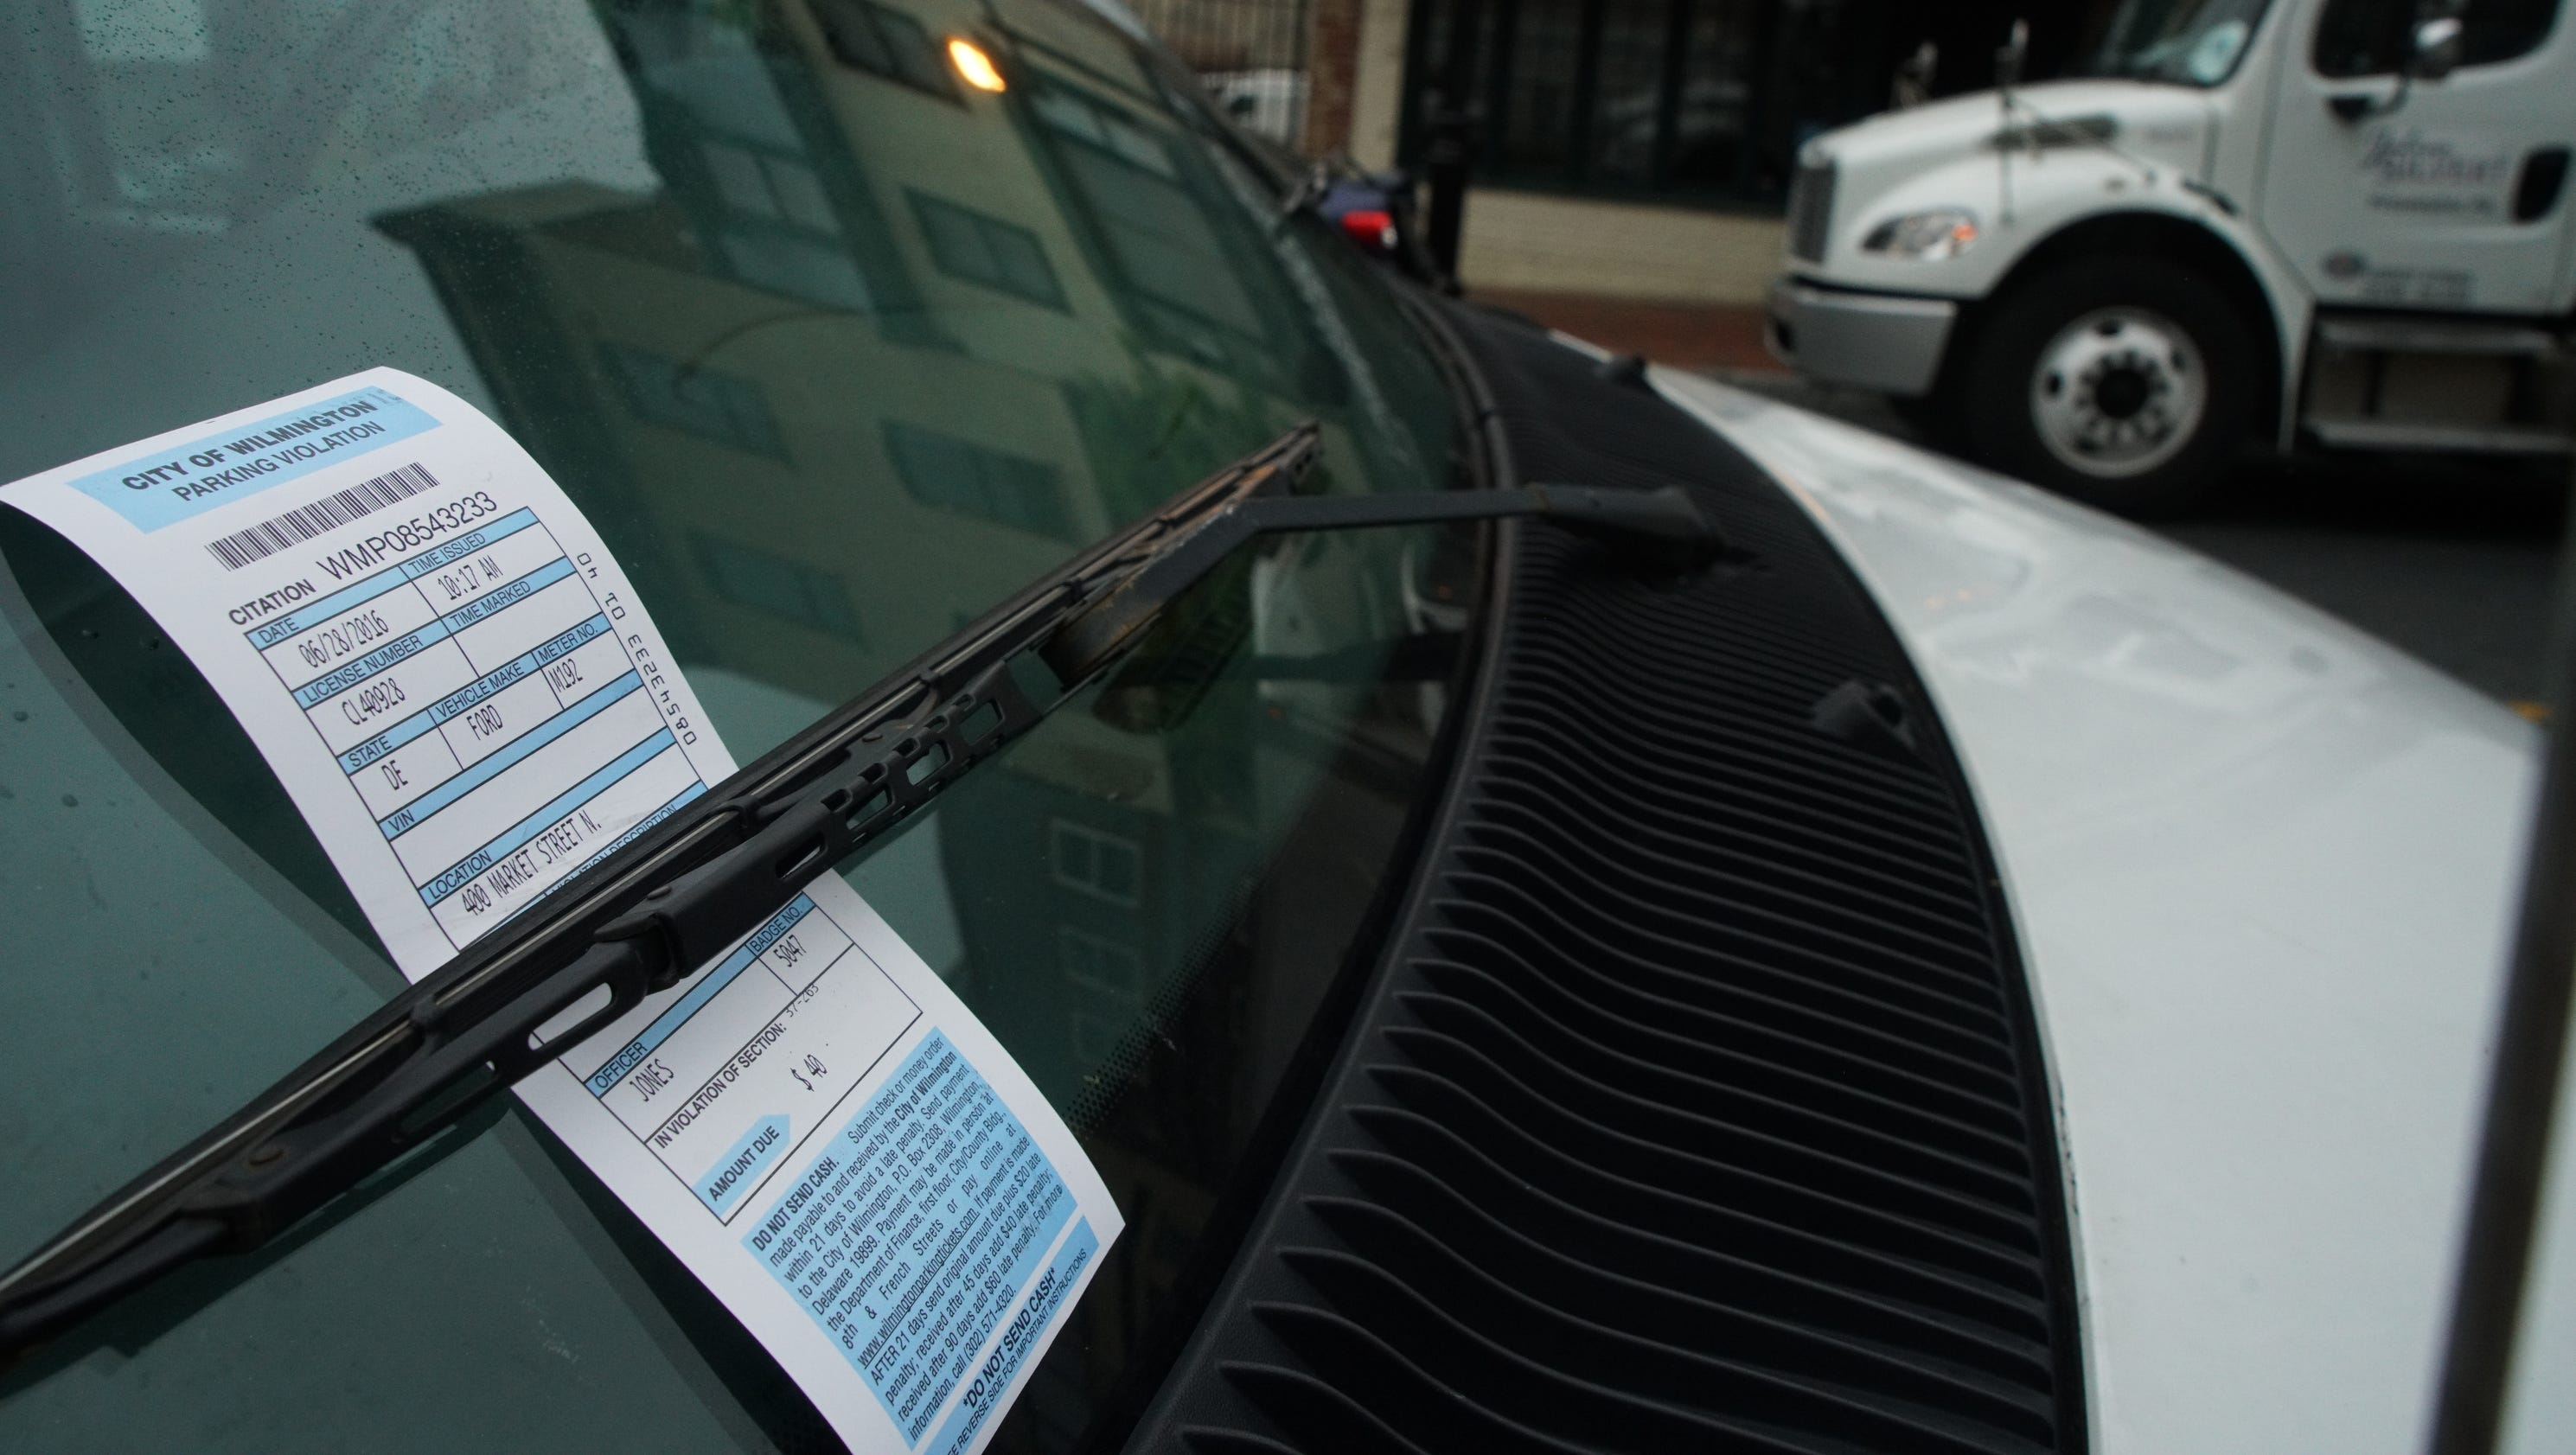 Parking Ticket After Selling Car